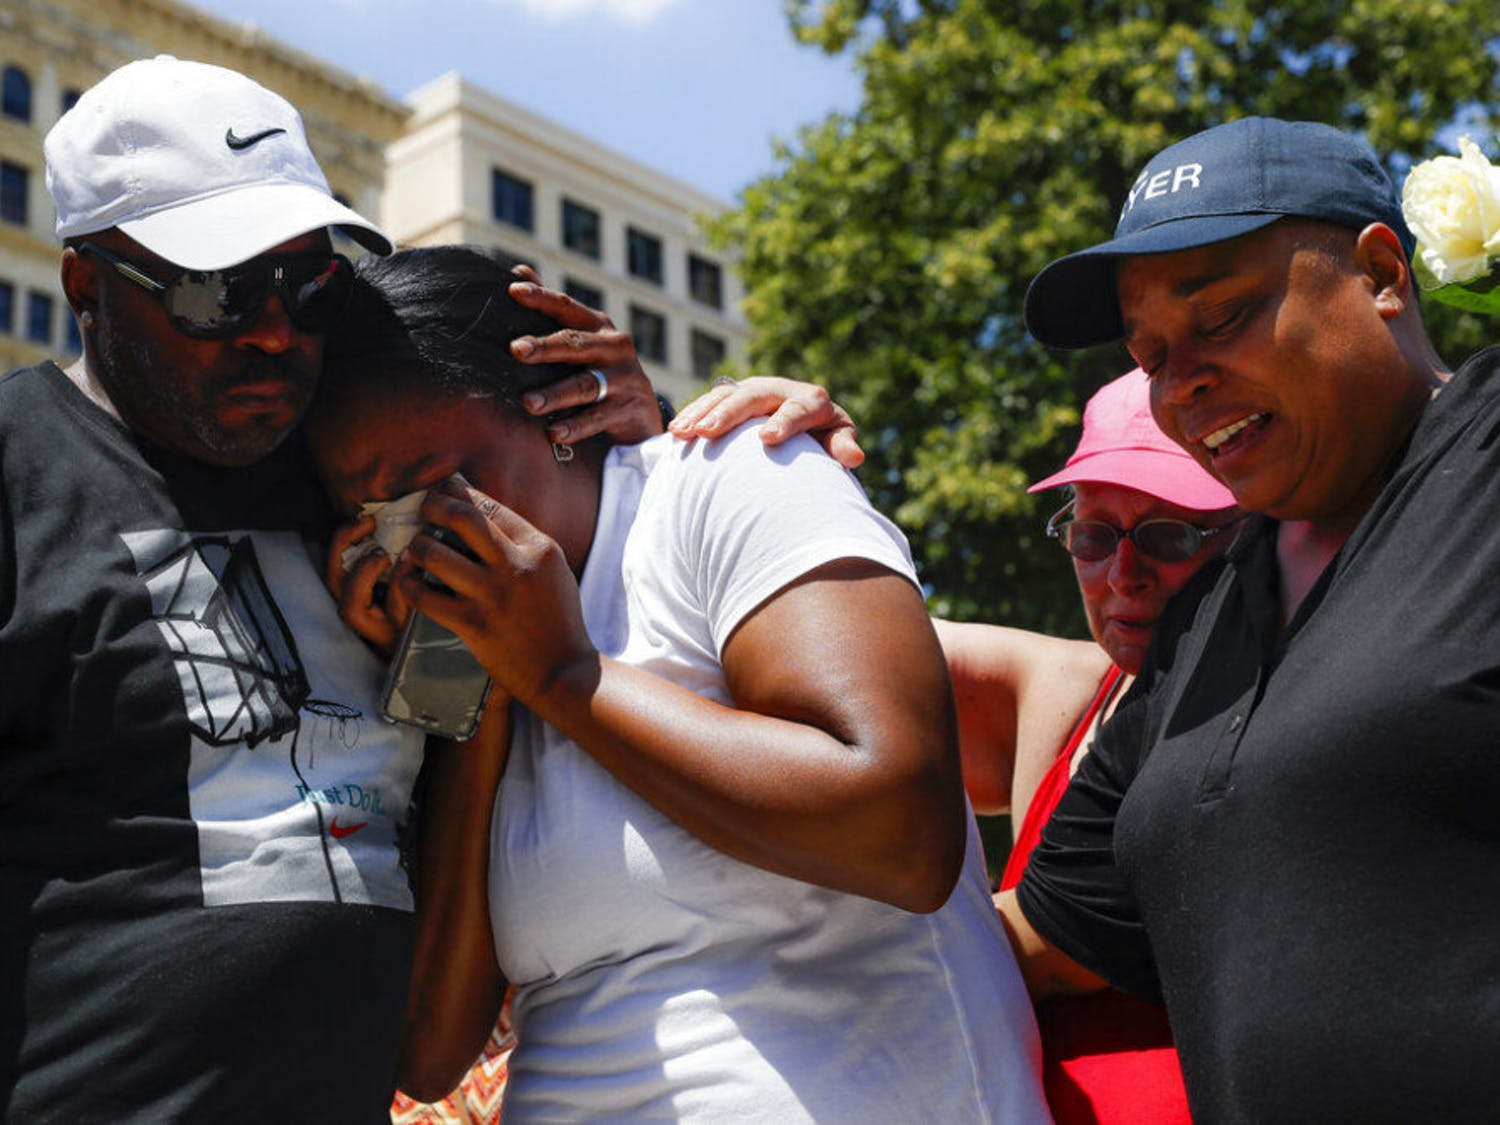 Mourners gather at a vigil following a nearby mass shooting, Sunday, Aug. 4, 2019, in Dayton, Ohio. Multiple people in Ohio have been killed in the second mass shooting in the U.S. in less than 24 hours, and the suspected shooter is also deceased, police said.